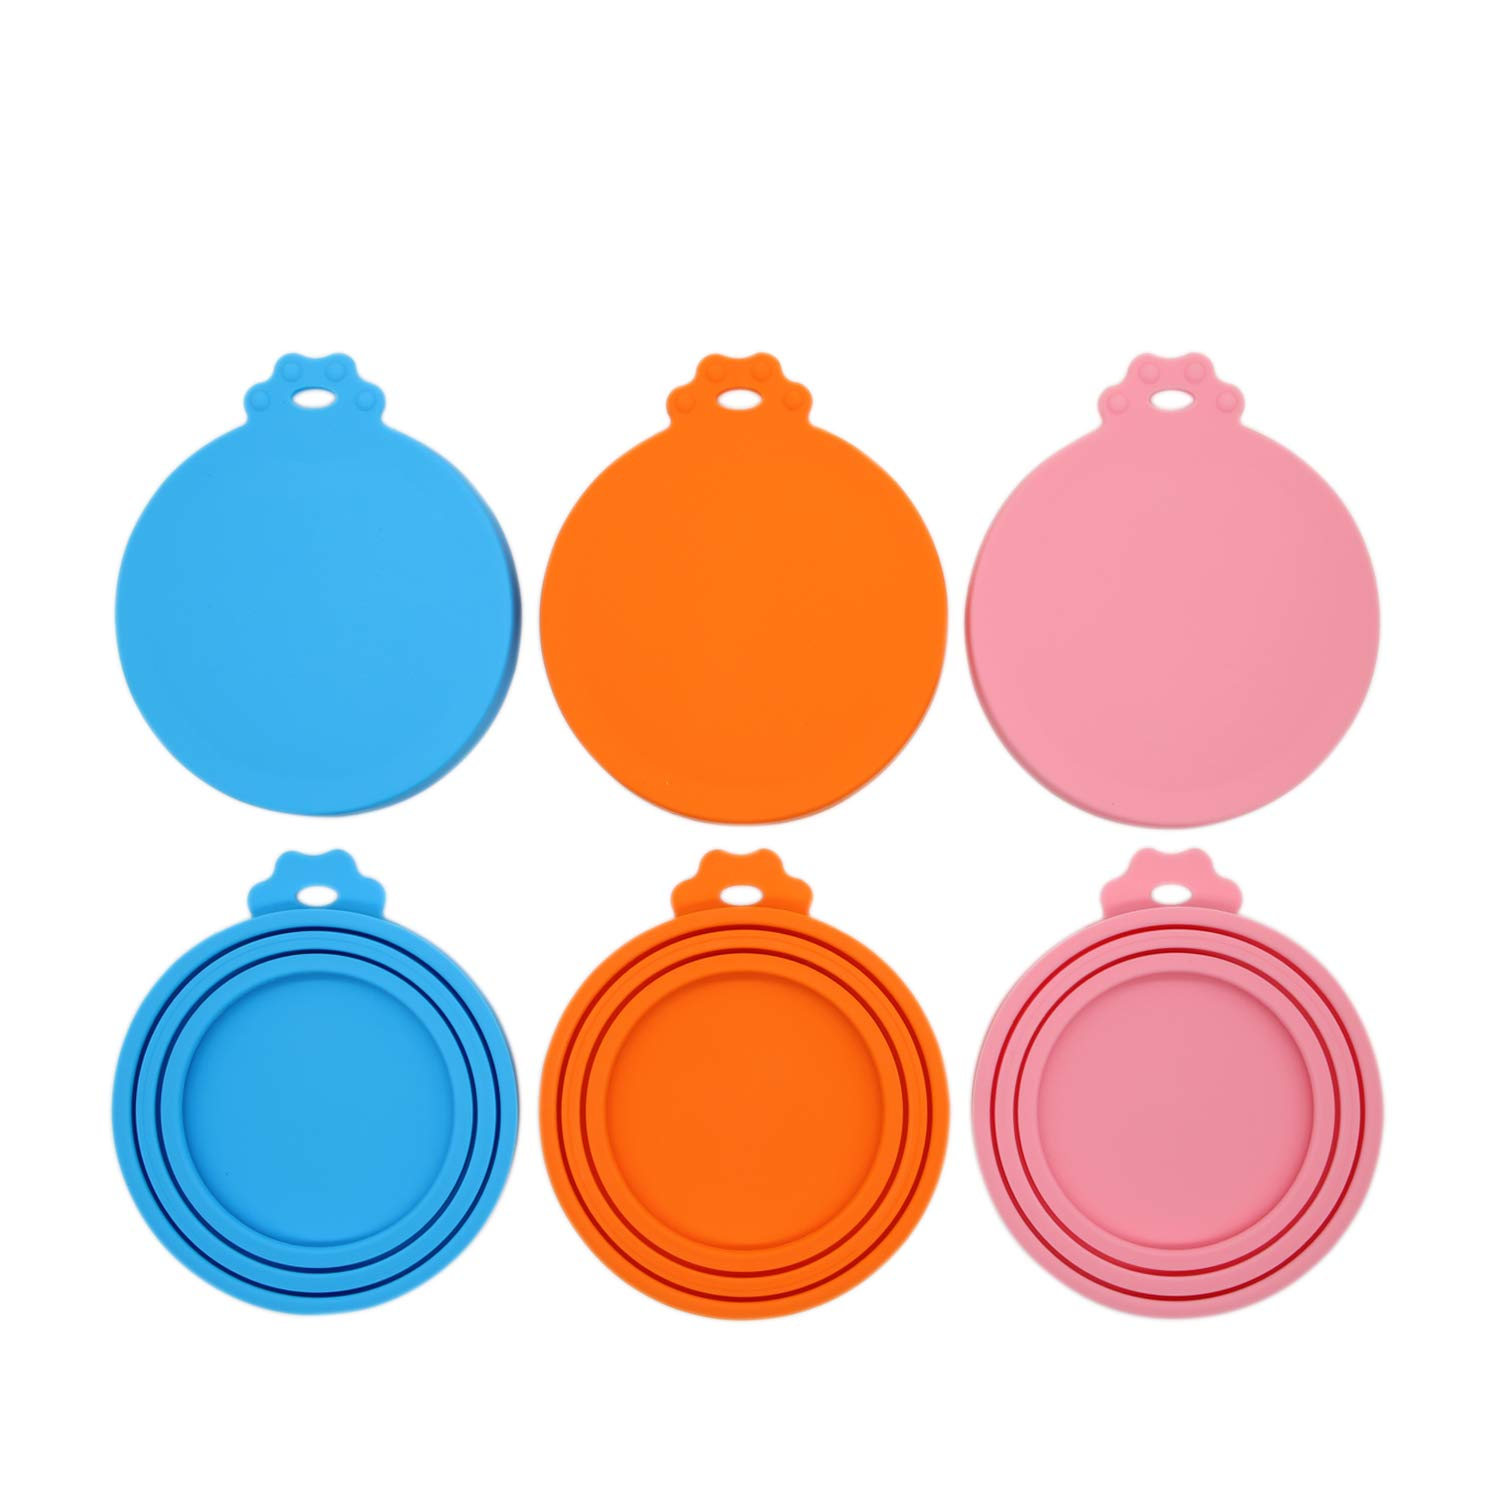 RUHHER Universal Can Lids/Silicone Can Covers for Pet Food Cans/Fits Most Standard Size Cans/100% FDA Certified Food Grade Silicone and BPA Free (6 Pack, 2 in Blue&2 in Orange&2 in Pink)